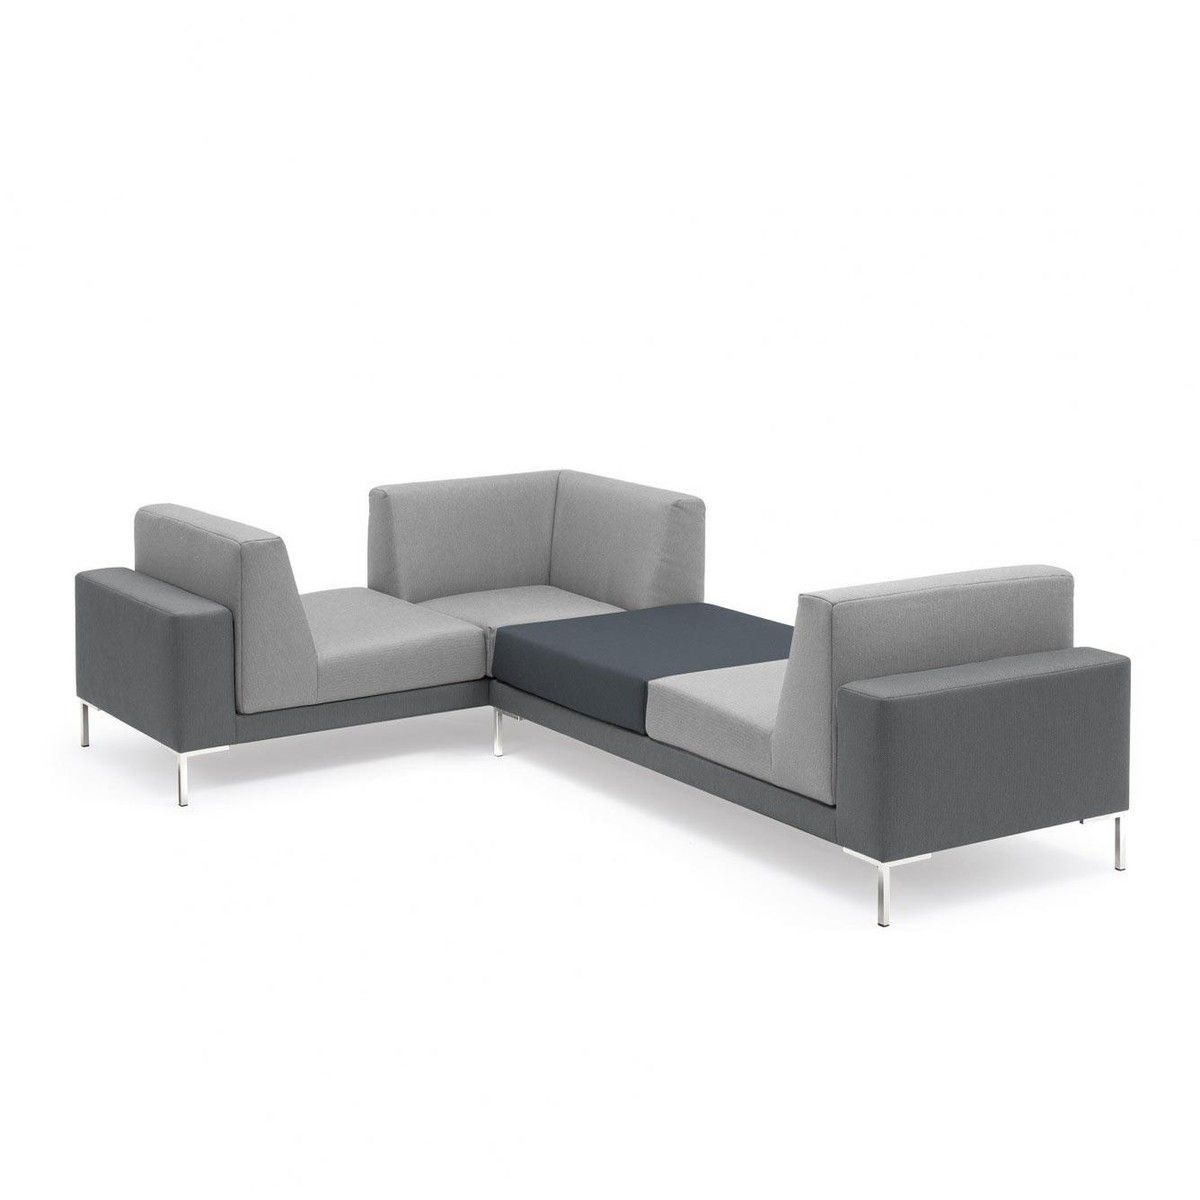 Freistil Rolf Benz Freistil 183 Sofa 270x186cm Grau Gestell Winkelfuß Glanzchrom Living Room Modern Furniture Modern Room